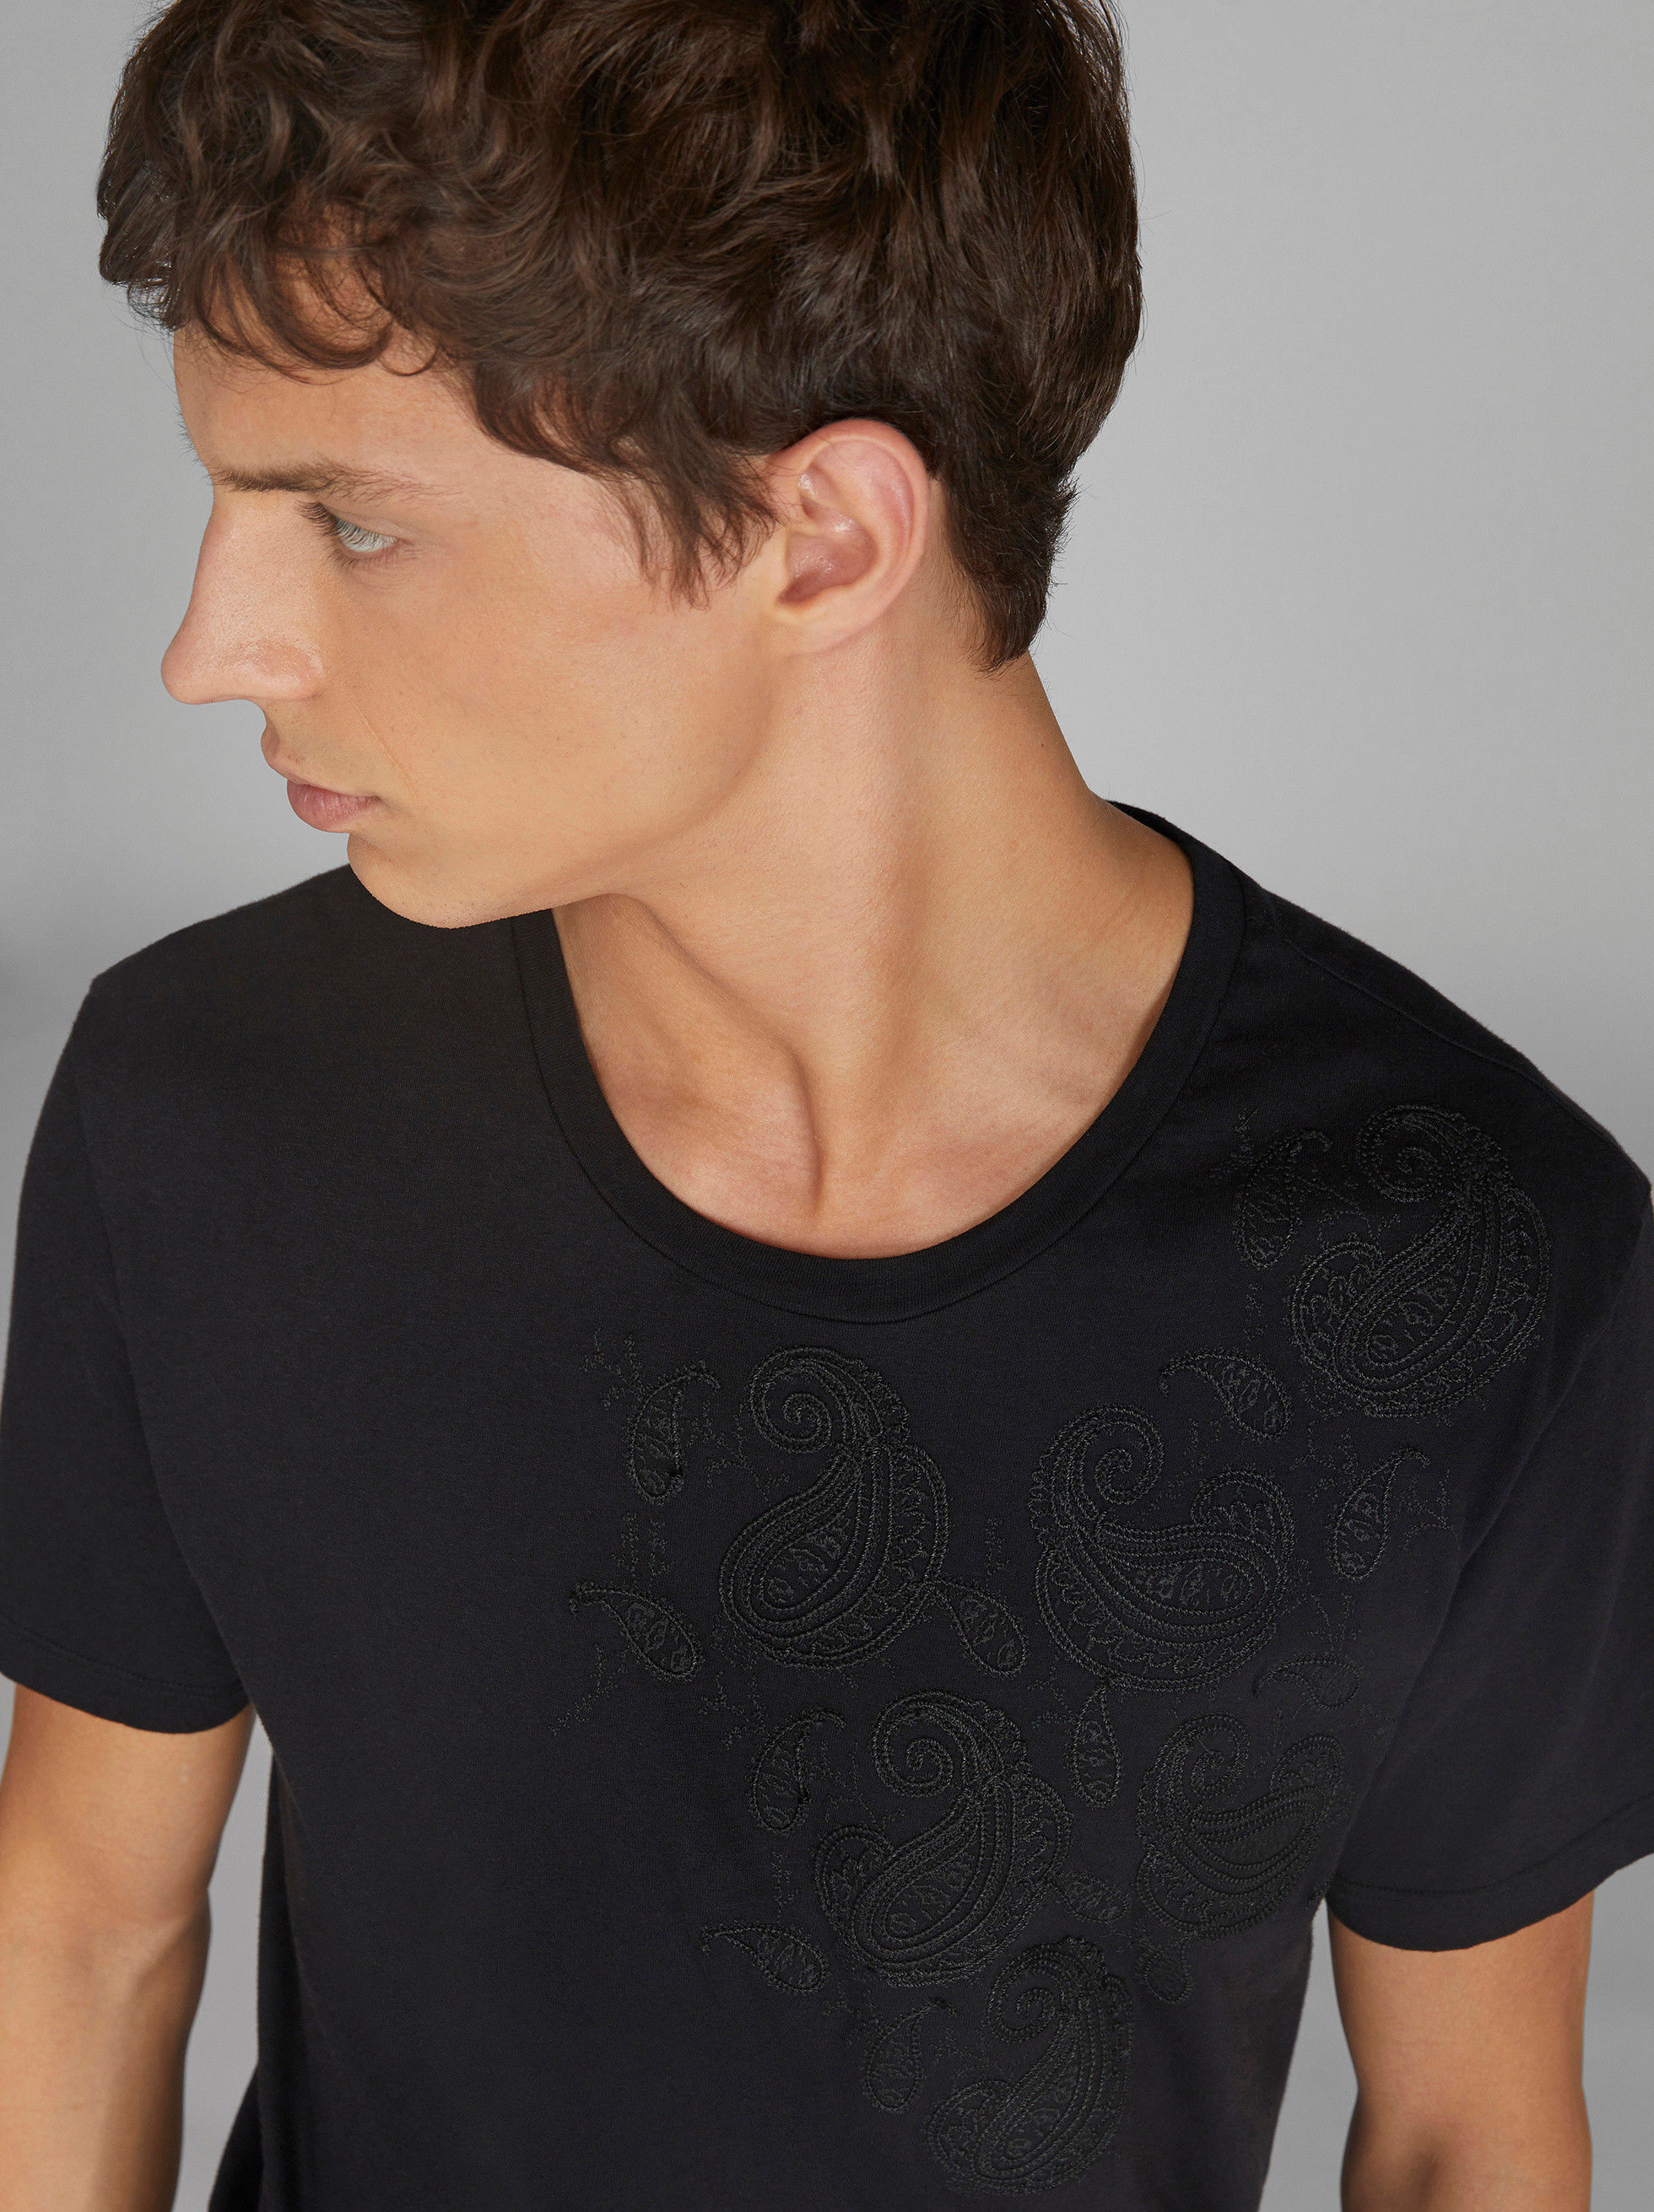 T-SHIRT WITH EMBROIDERED PAISLEY PATTERN